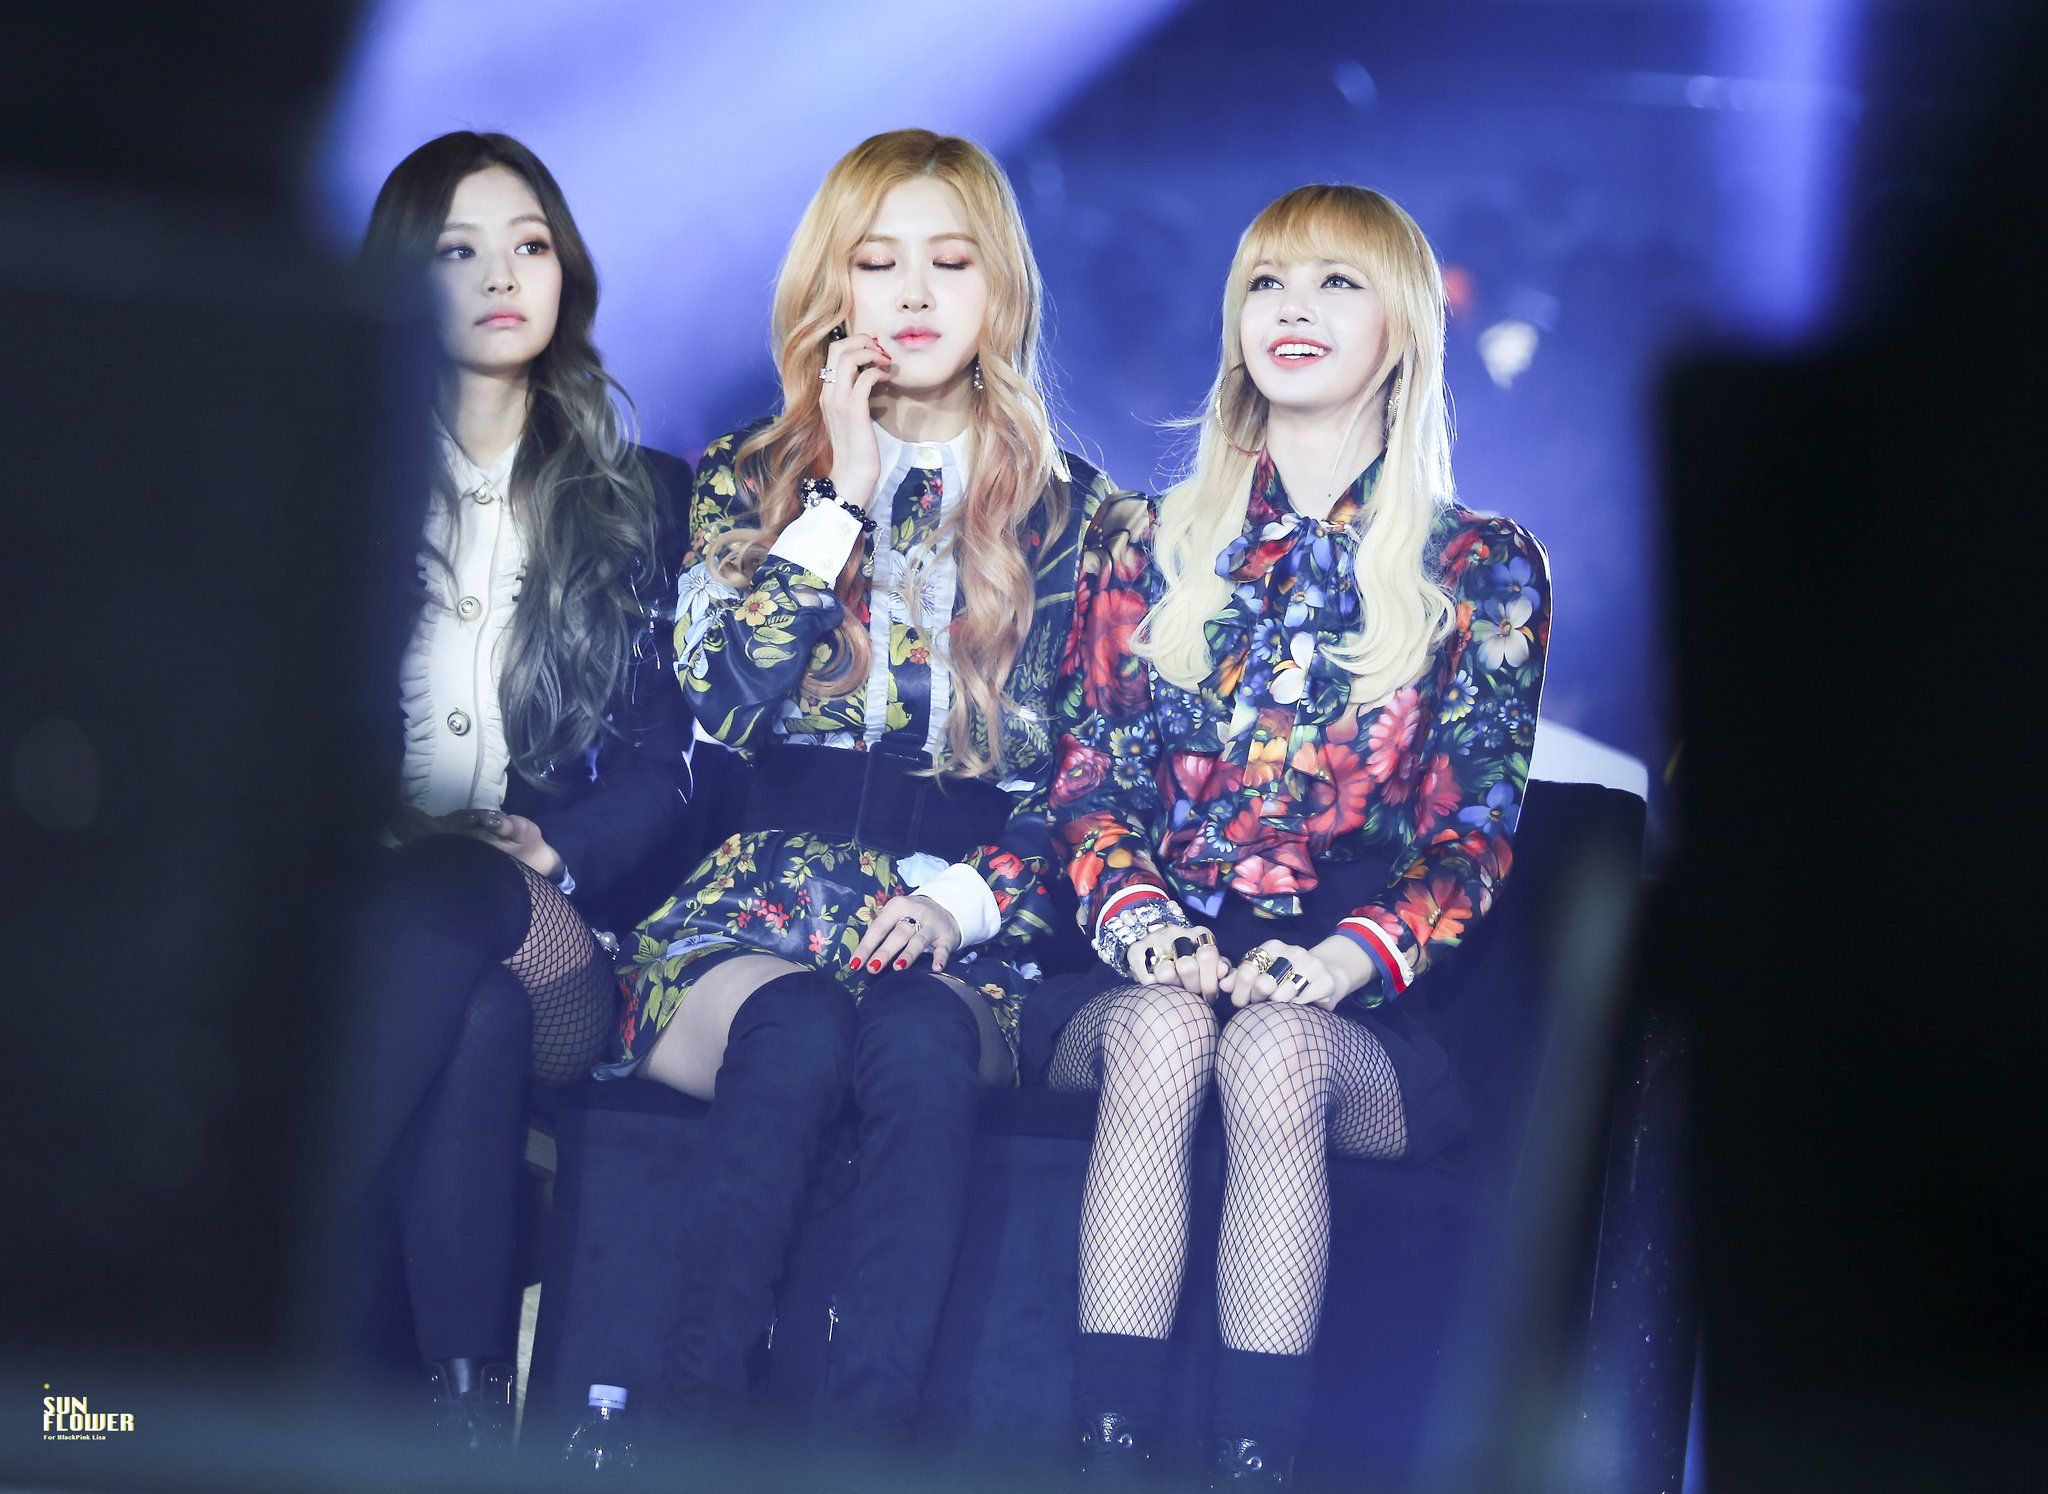 "Sun Flower on Twitter: ""161226 가요대전  #리사 #LISA #블랙핑크 #BLACKPINK   https://t.co/AJ1nSCiFZs https://t.co/W997gnaAqu https://t.co/2jD8eNg5AG"""